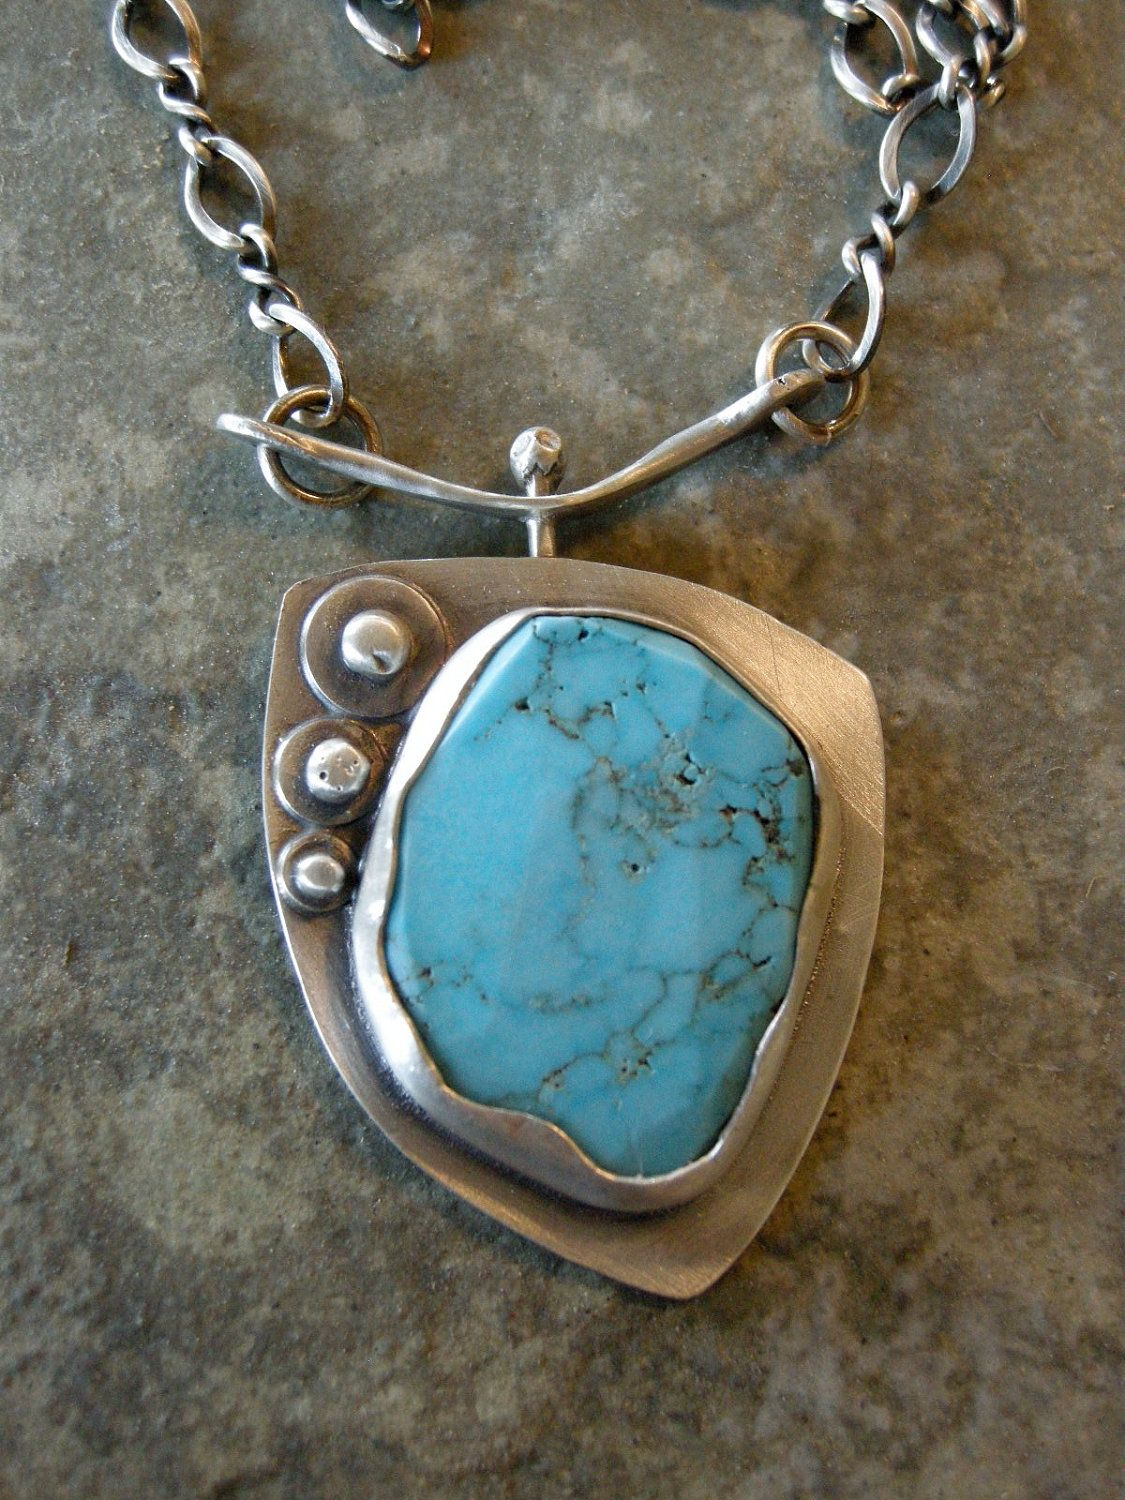 Turquoise pendant with sterling silver bezel and chain 00184 turquoise pendant with sterling silver bezel and chain 12500 via etsy aloadofball Choice Image